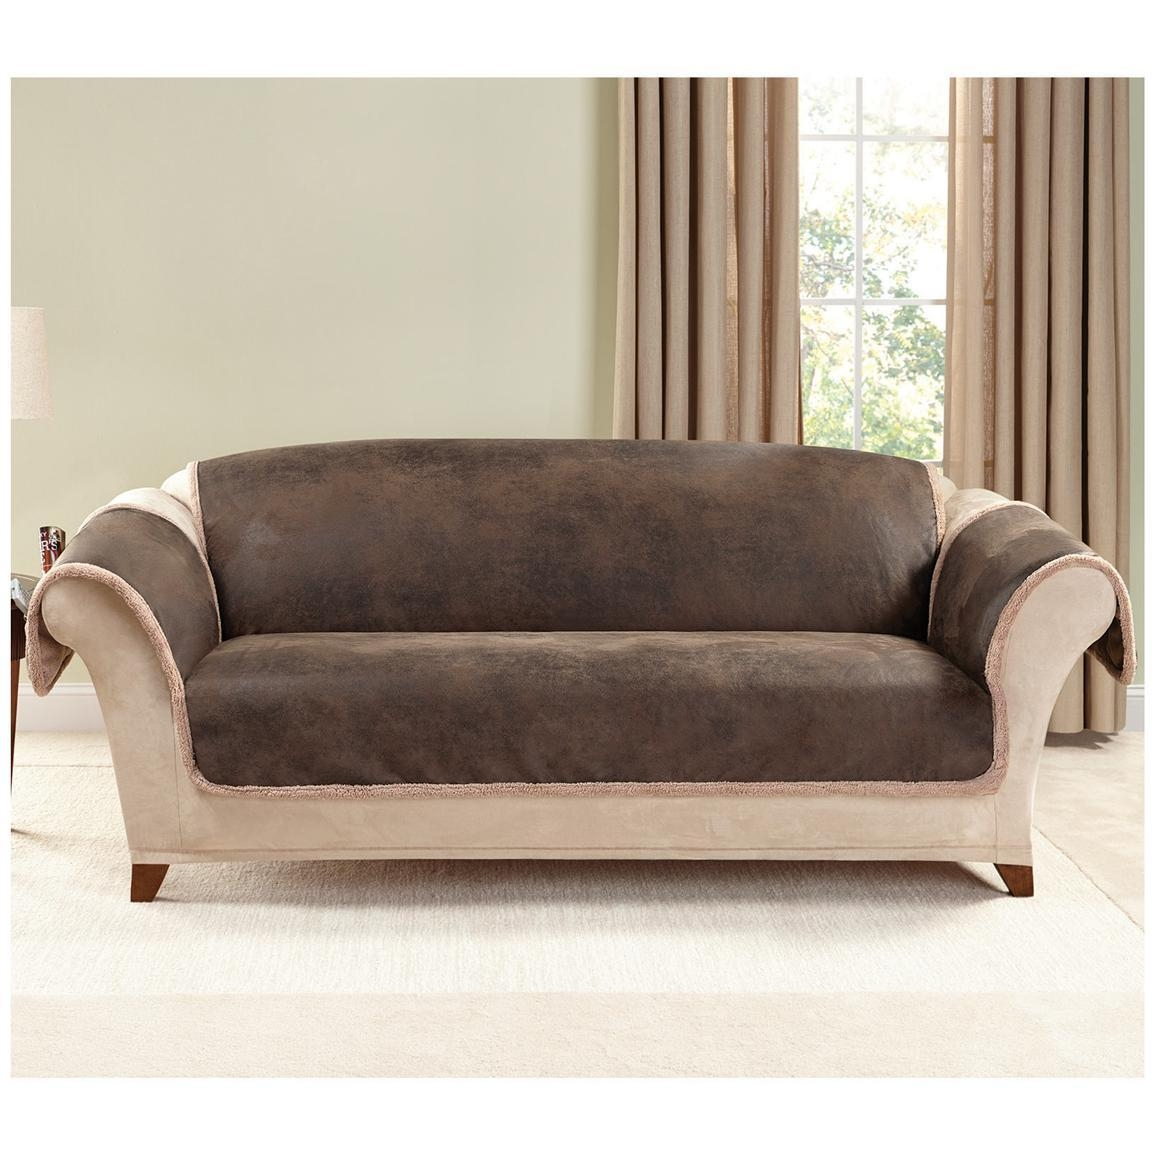 Furniture: Sure Fit Couch Covers | Sure Fit Sofa Covers | Couch With Regard To Armless Couch Slipcovers (Image 12 of 20)